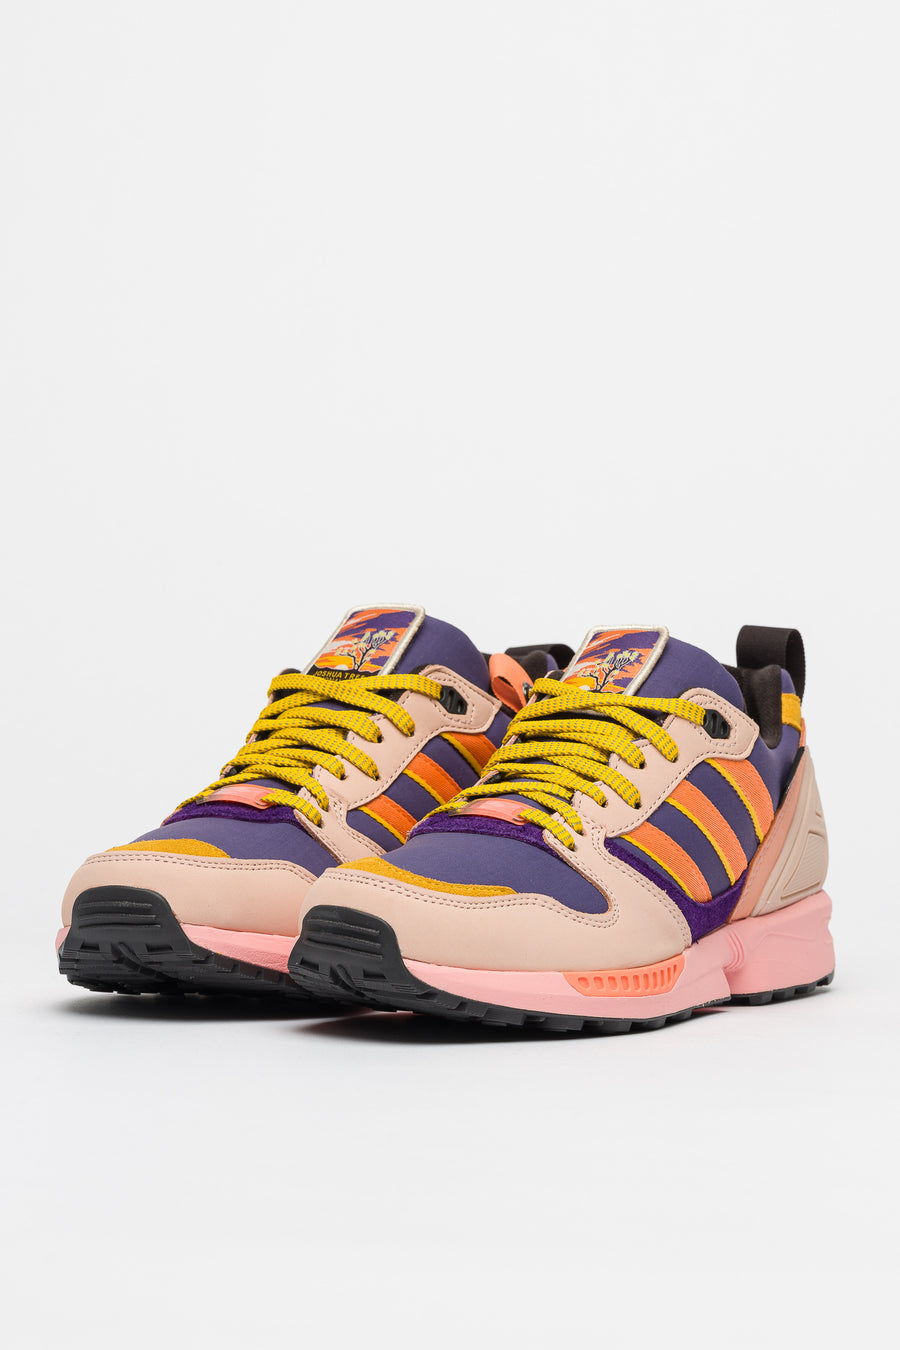 Zx 5000 National Park Foundation Joshua Tree In Orange Pink Purple